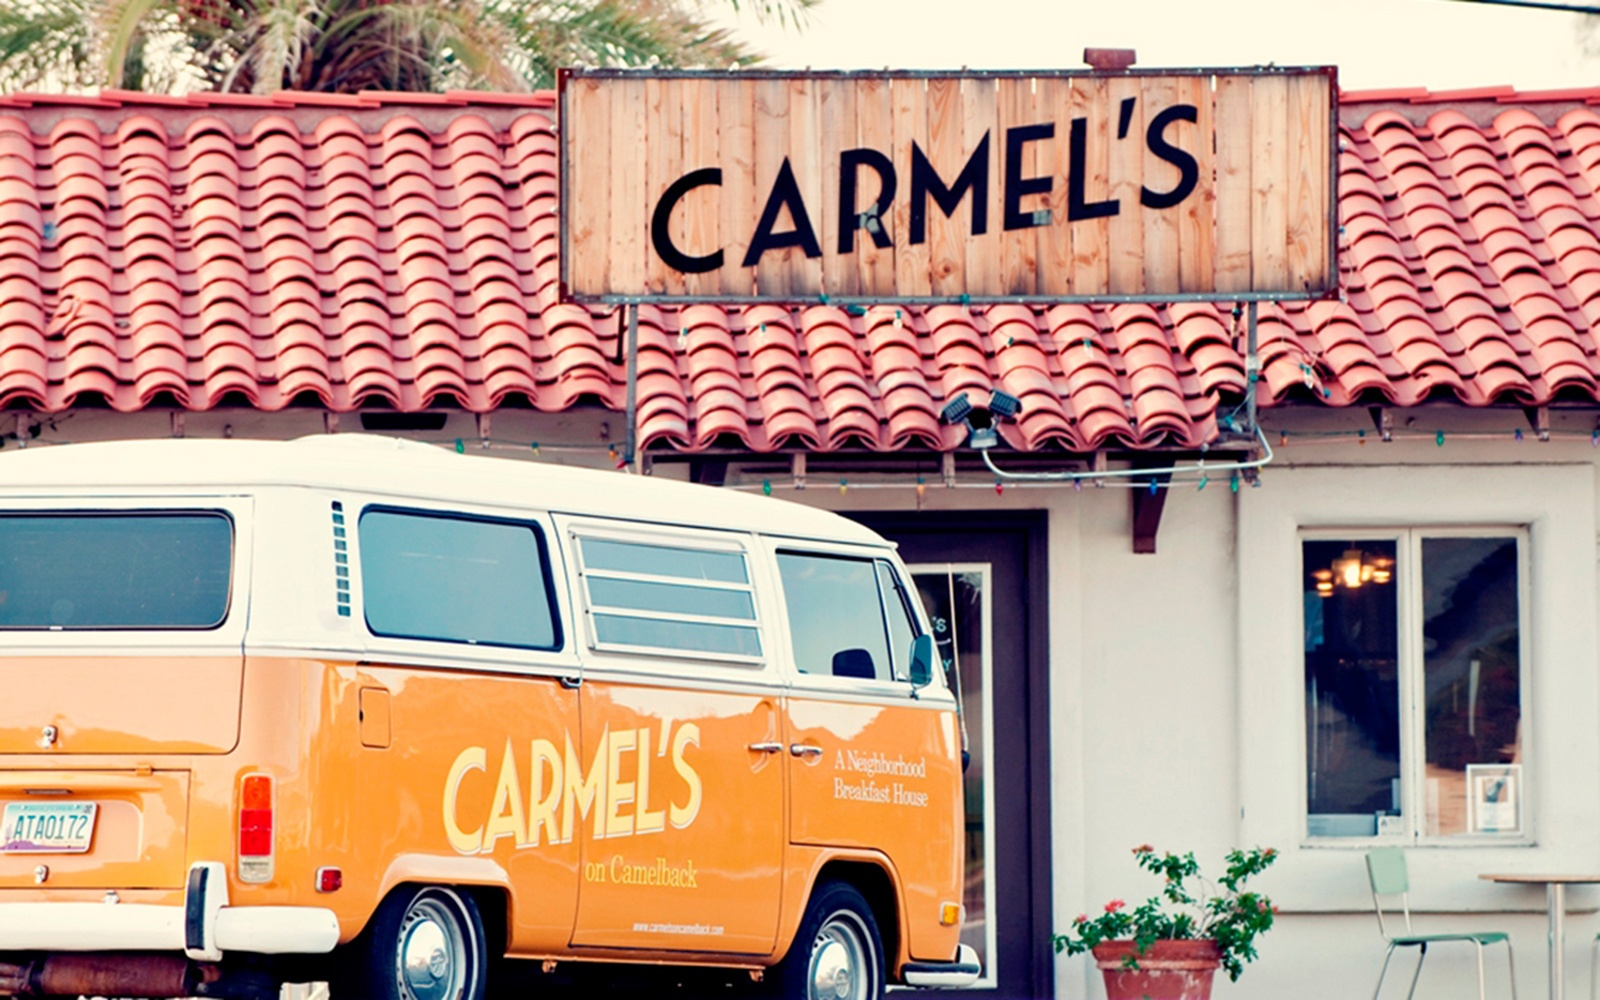 Carmel's Breakfast House, Phoenix